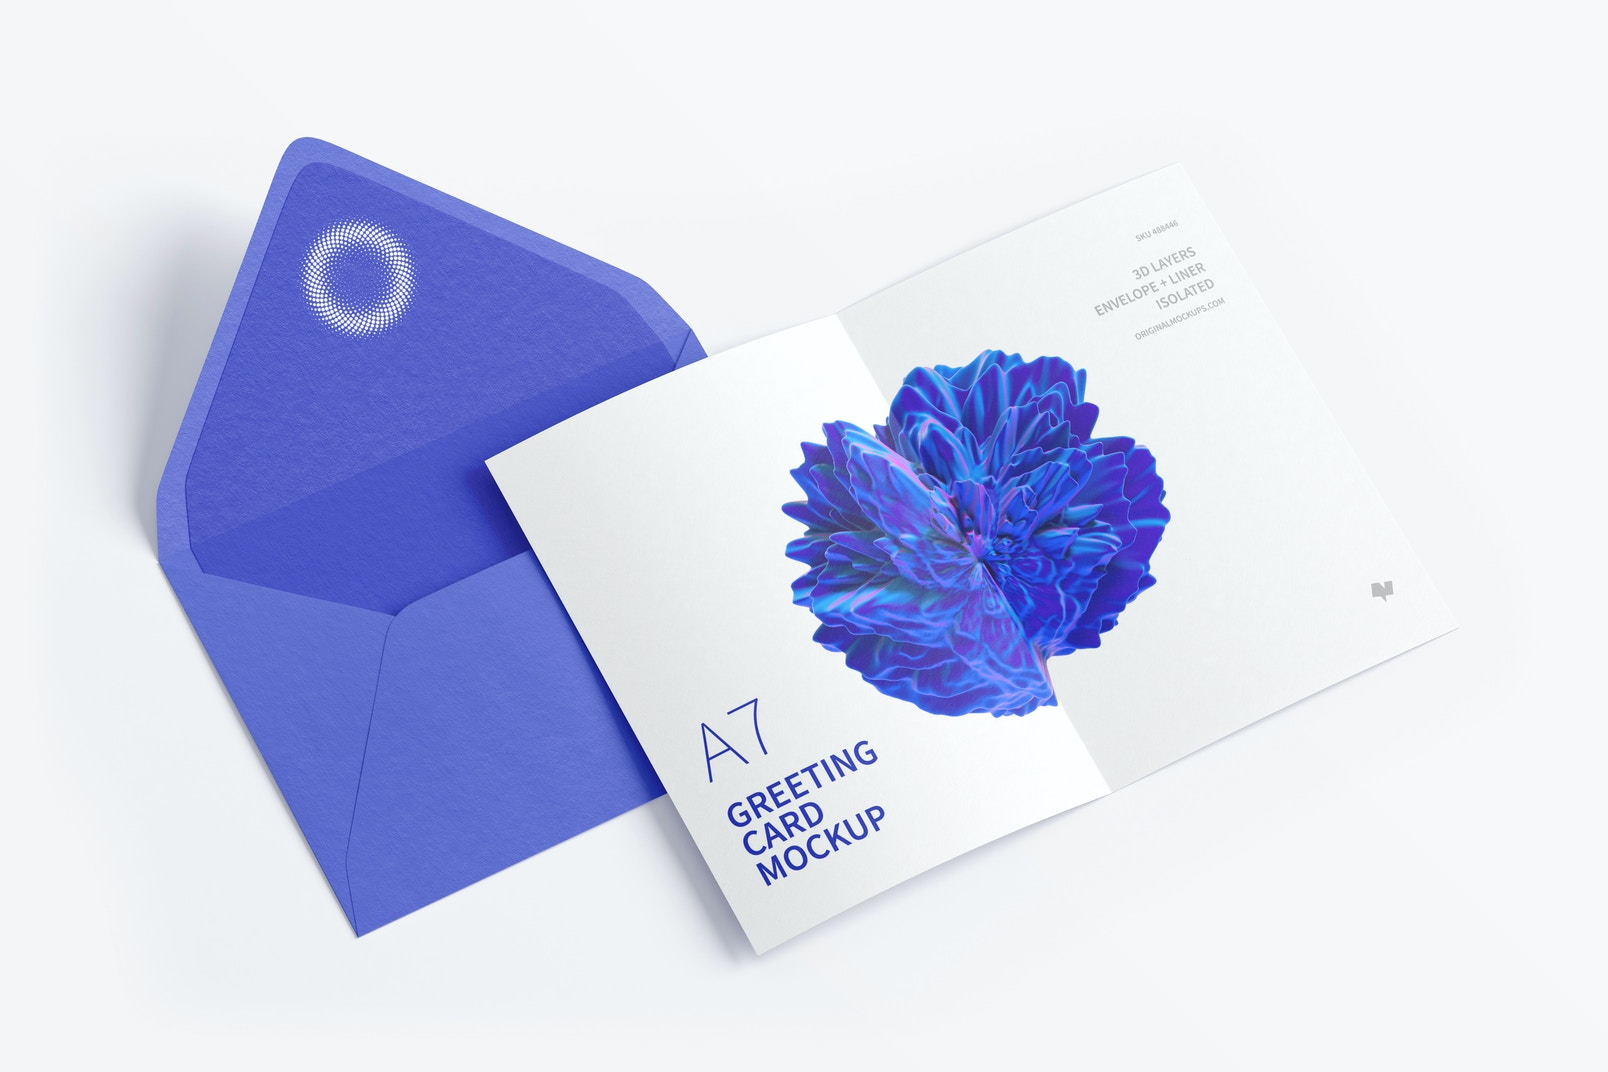 This is how your birthday card designs or messages for a special day could look like.